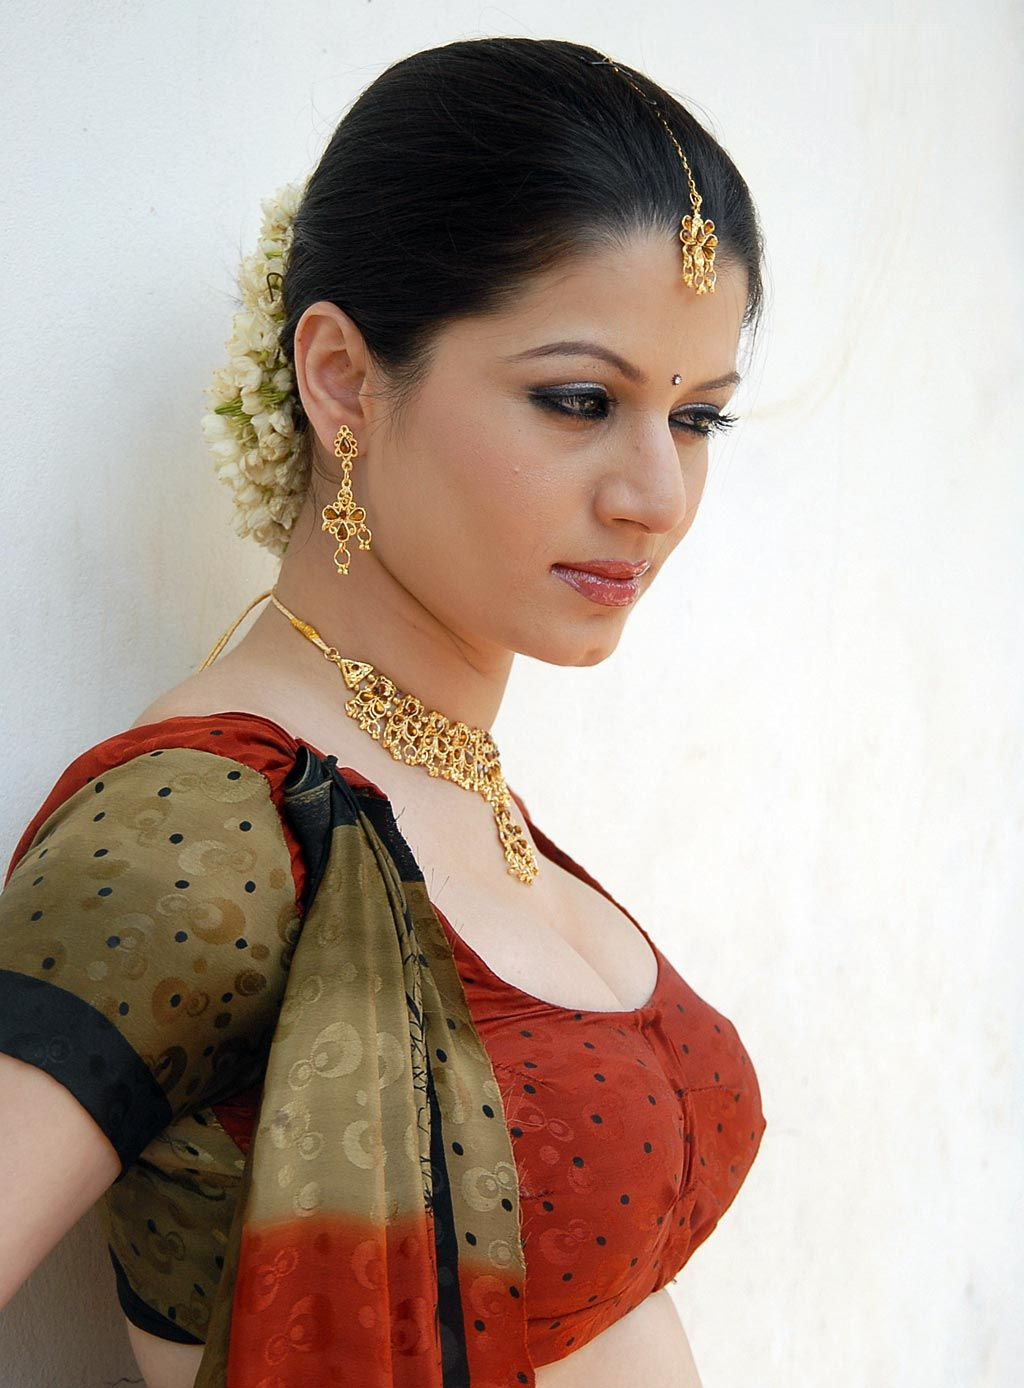 High Quality Bollywood Celebrity Pictures Hot South -2159